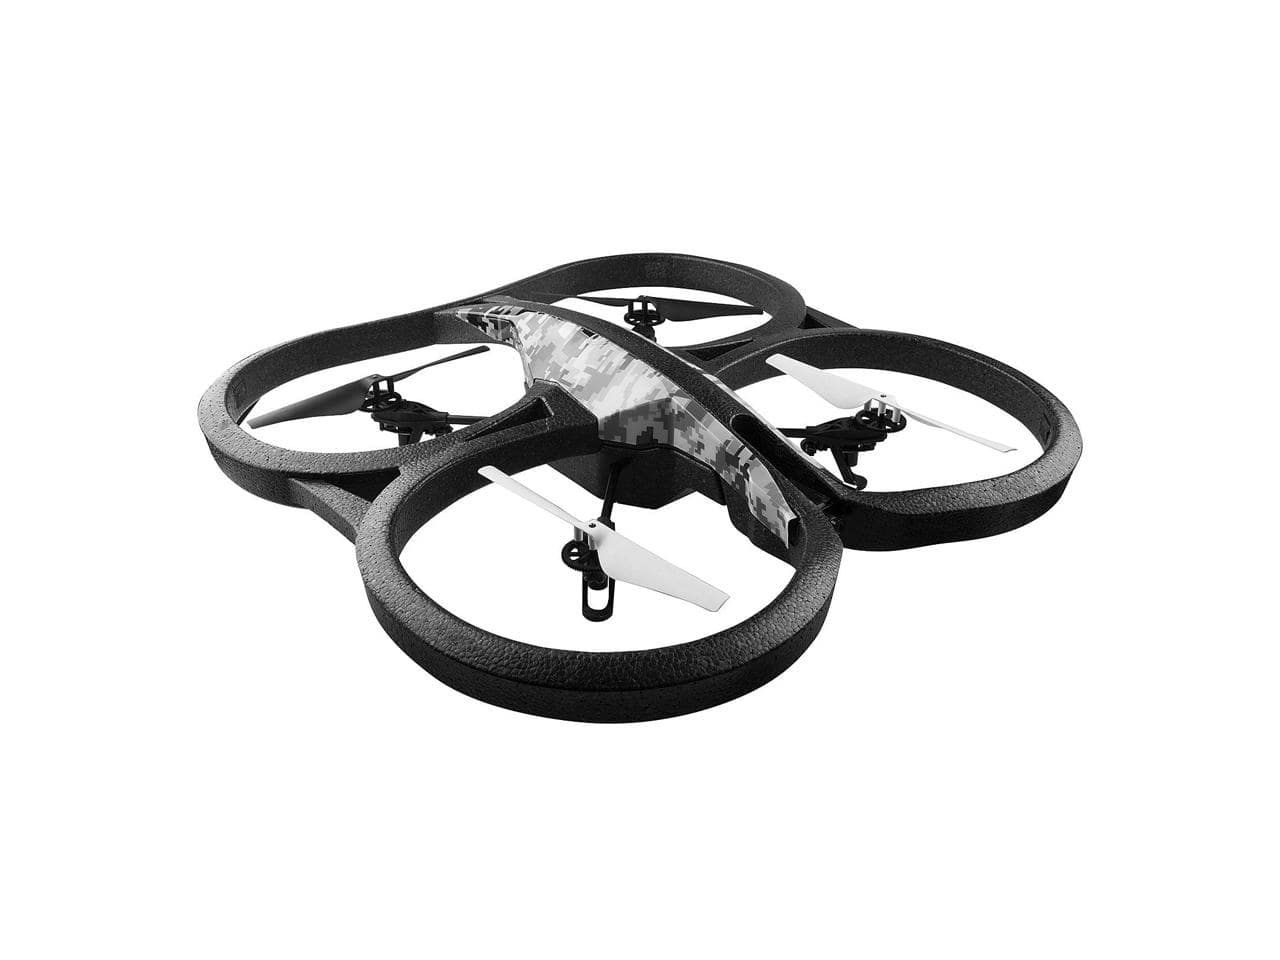 Parrot Snow AR Drone 2.0 Elite Edition Quadcopter with 720p HD Camera (Refurbished) $49.99 + free shipping